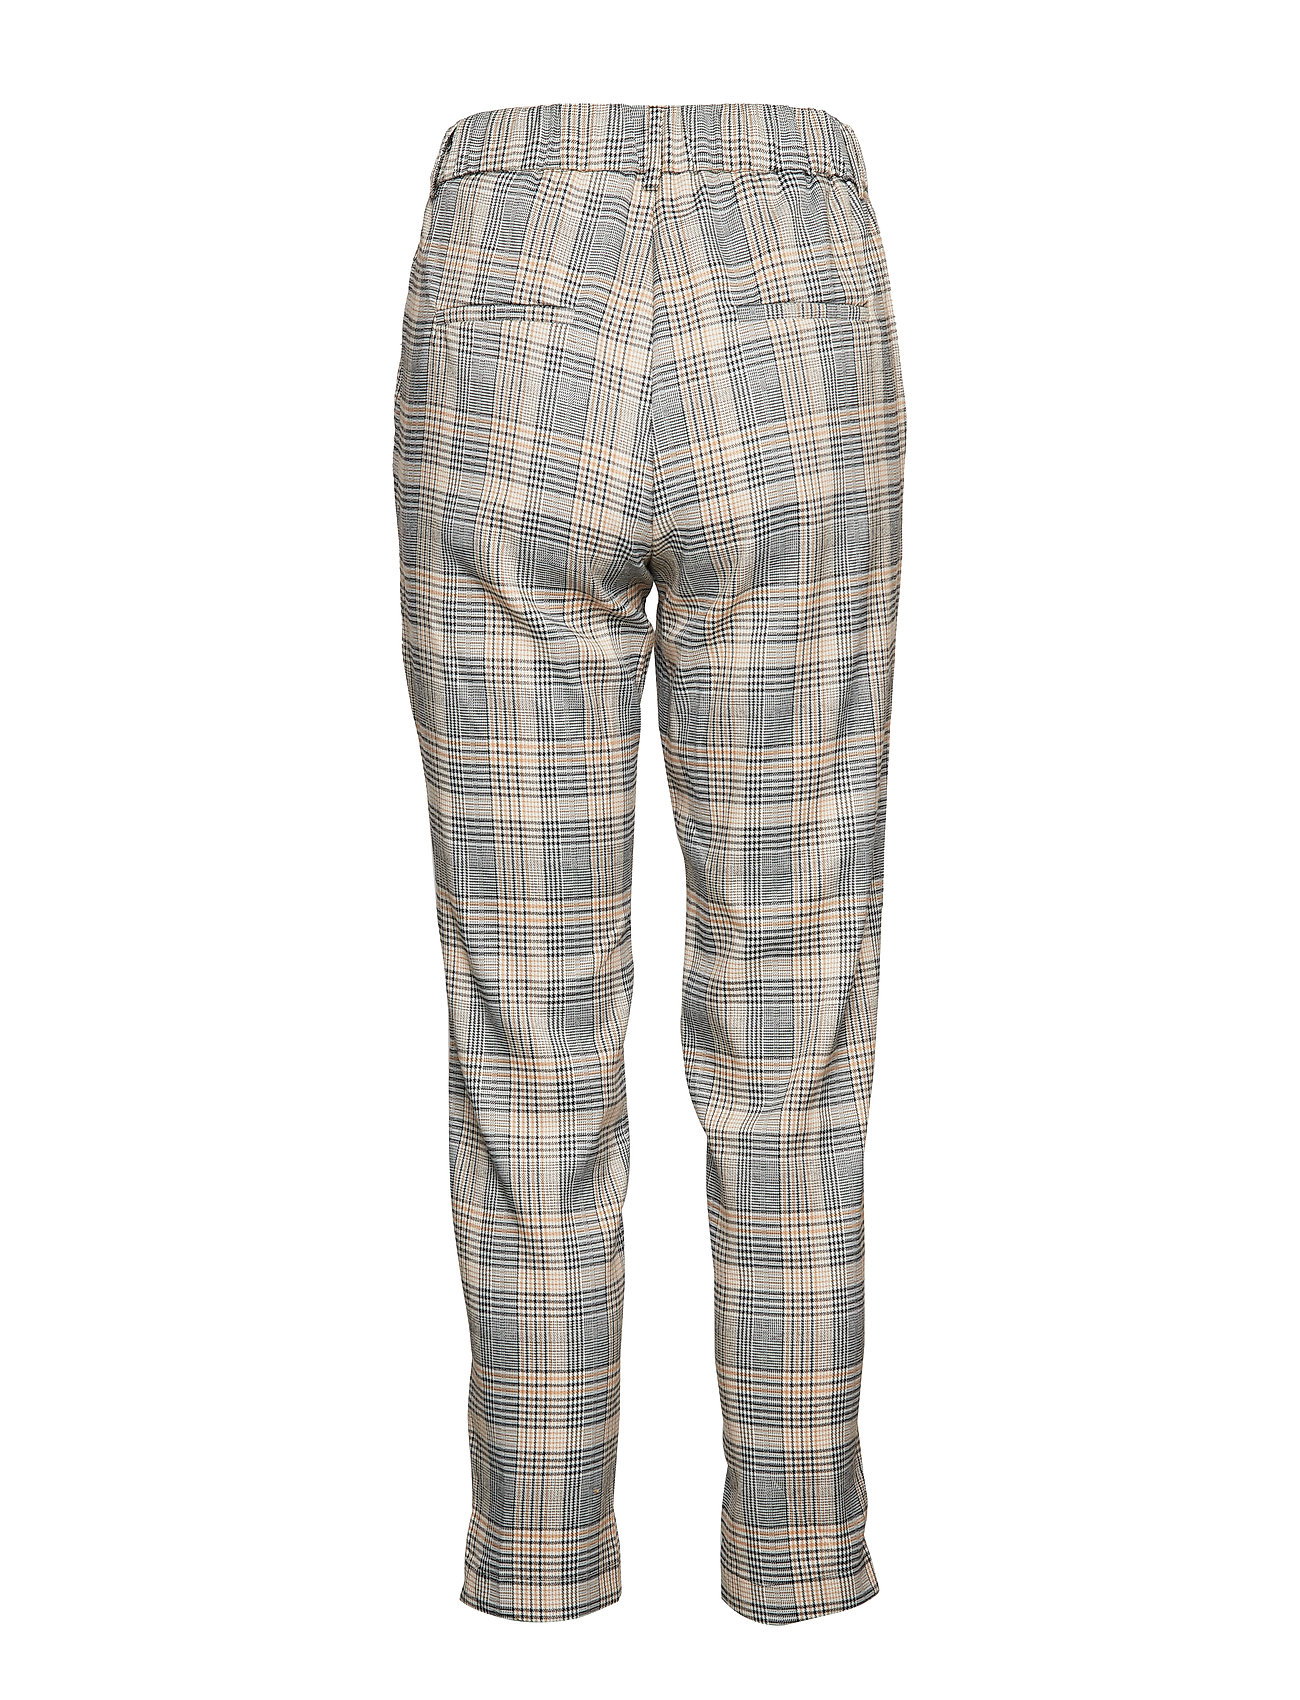 Bxdanna Cropped Pants -  - b.young